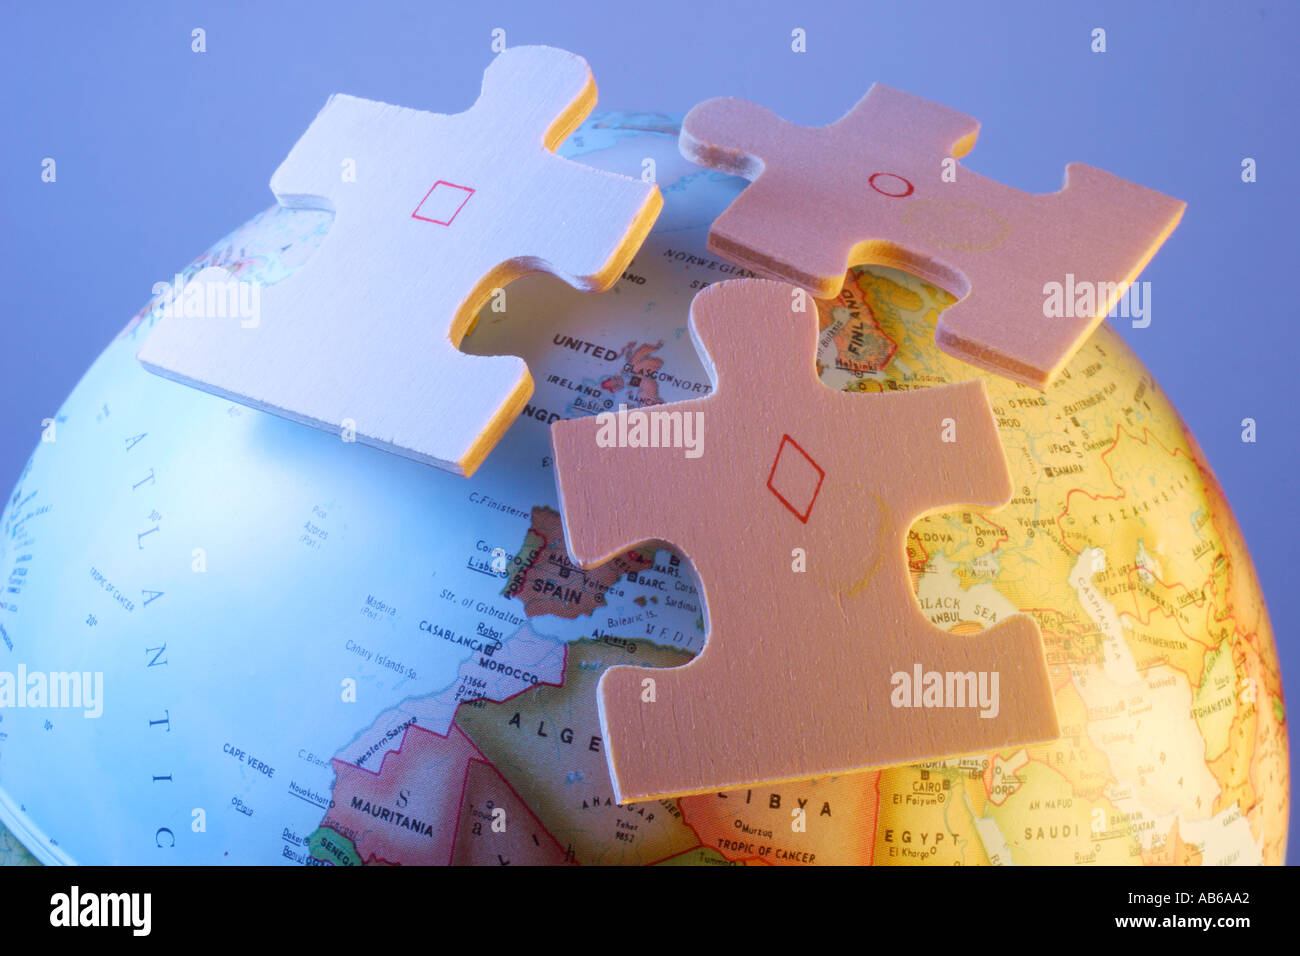 Globe jigsaw puzzle pieces stock photos globe jigsaw puzzle pieces globe with jigsaw puzzle pieces stock image gumiabroncs Image collections